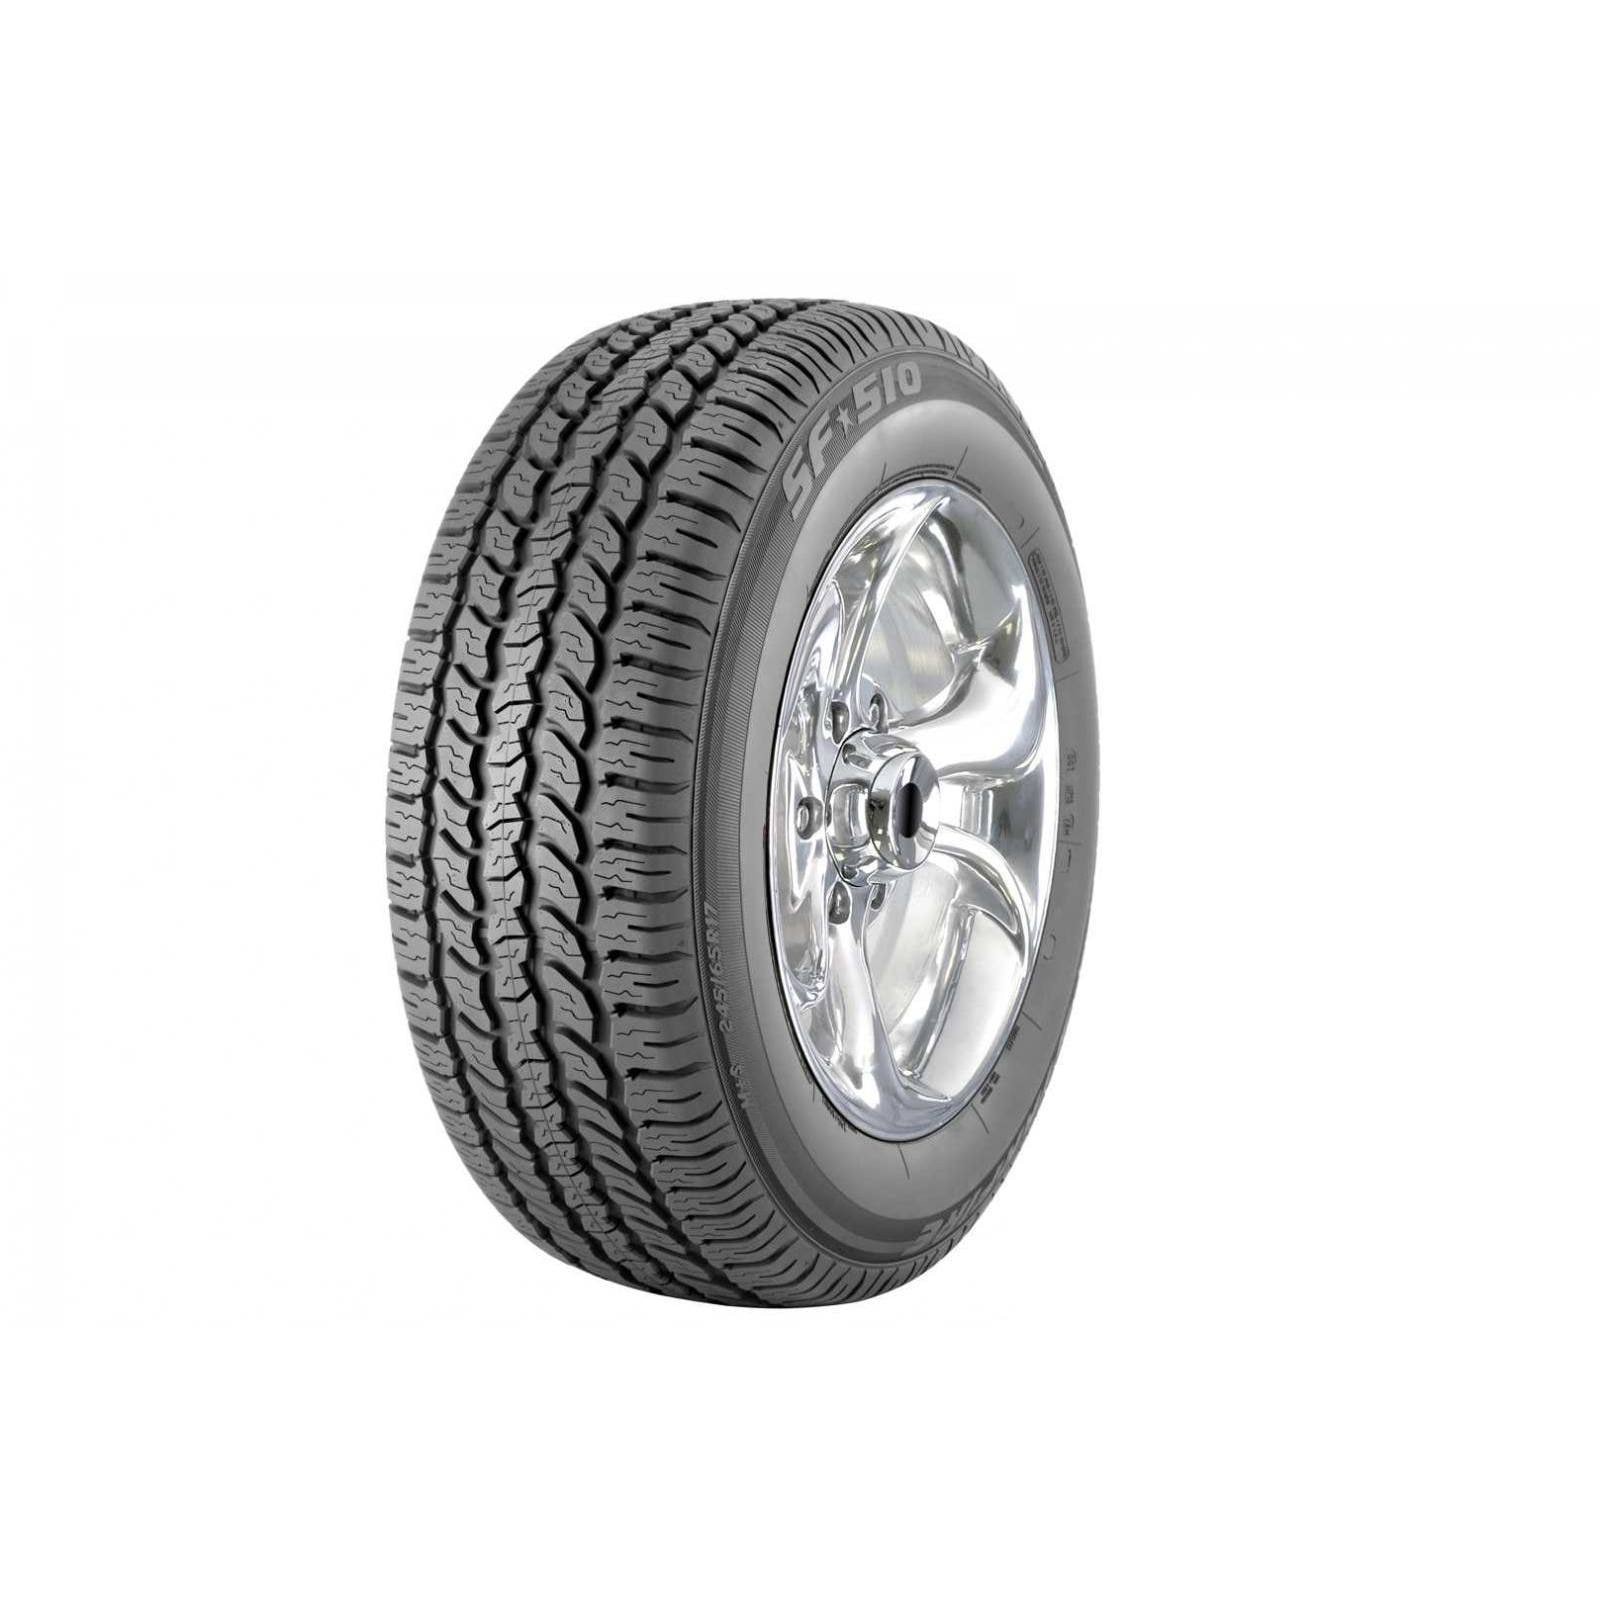 Starfire SF-510 LT All Season Tire - LT235/80R17 LRE/10 p...